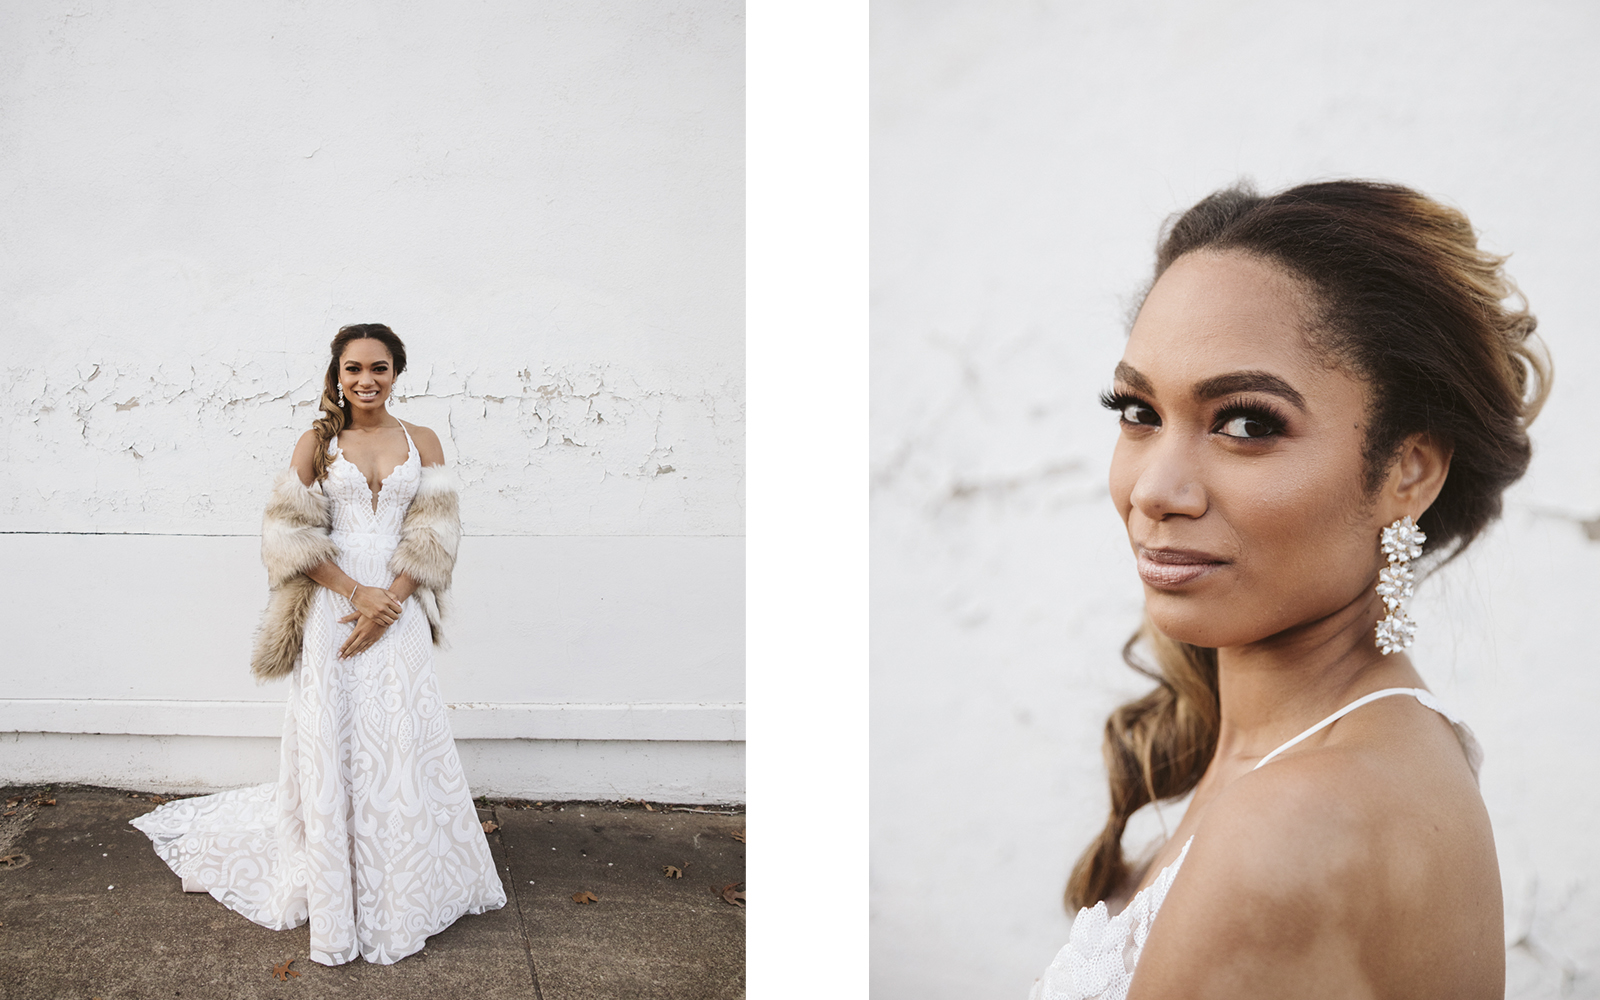 Bridal portrait, wedding photographer Barcelona | Natalia Wisniewska Photography